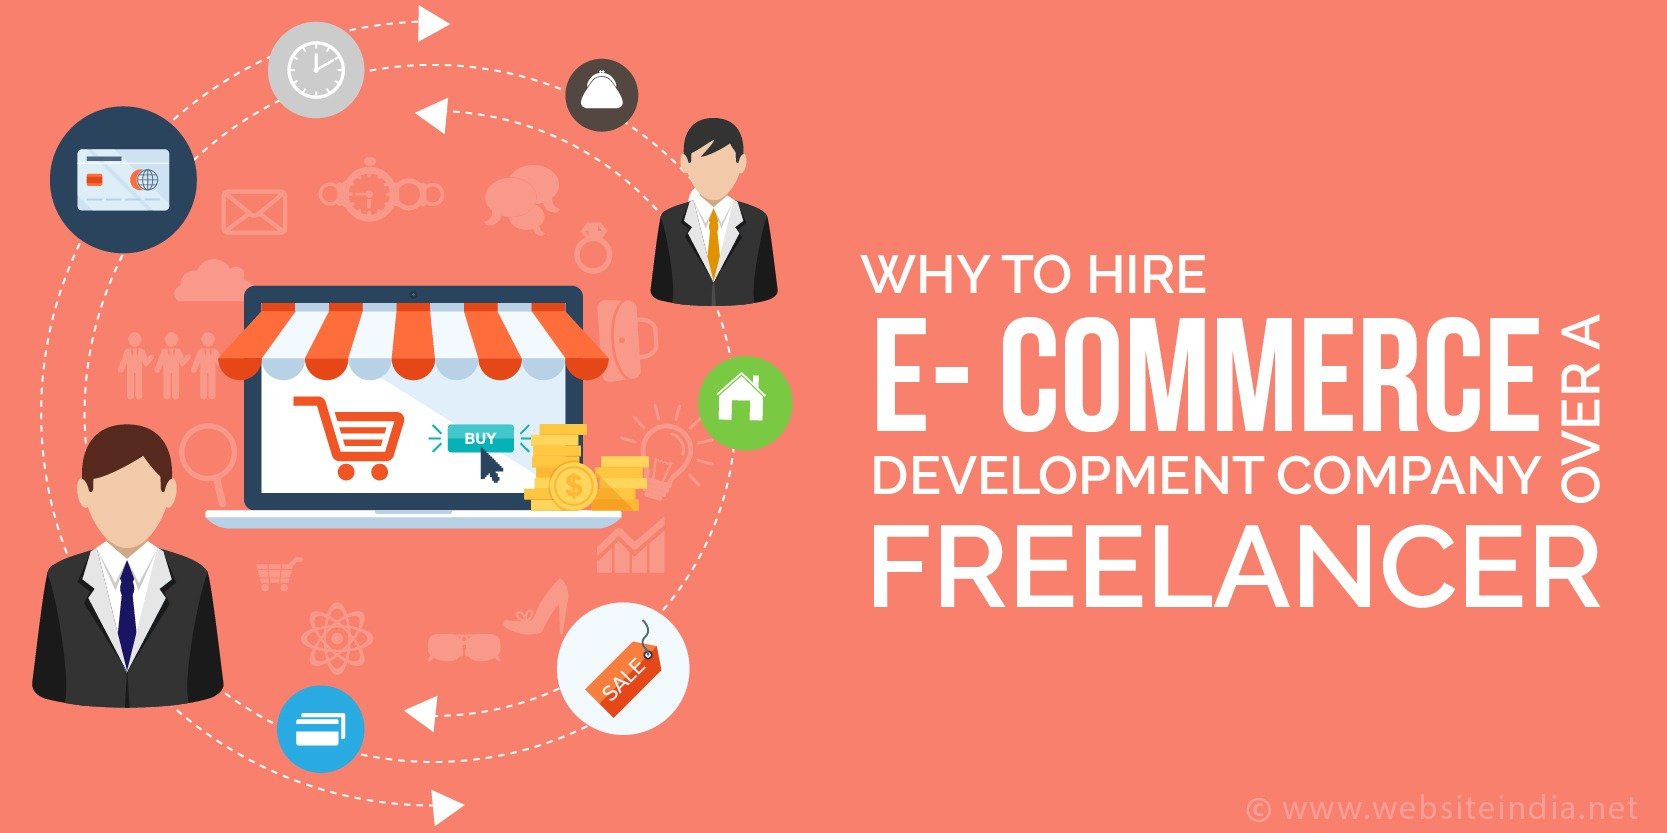 Why to hire Ecommerce Development Company over a Freelancer